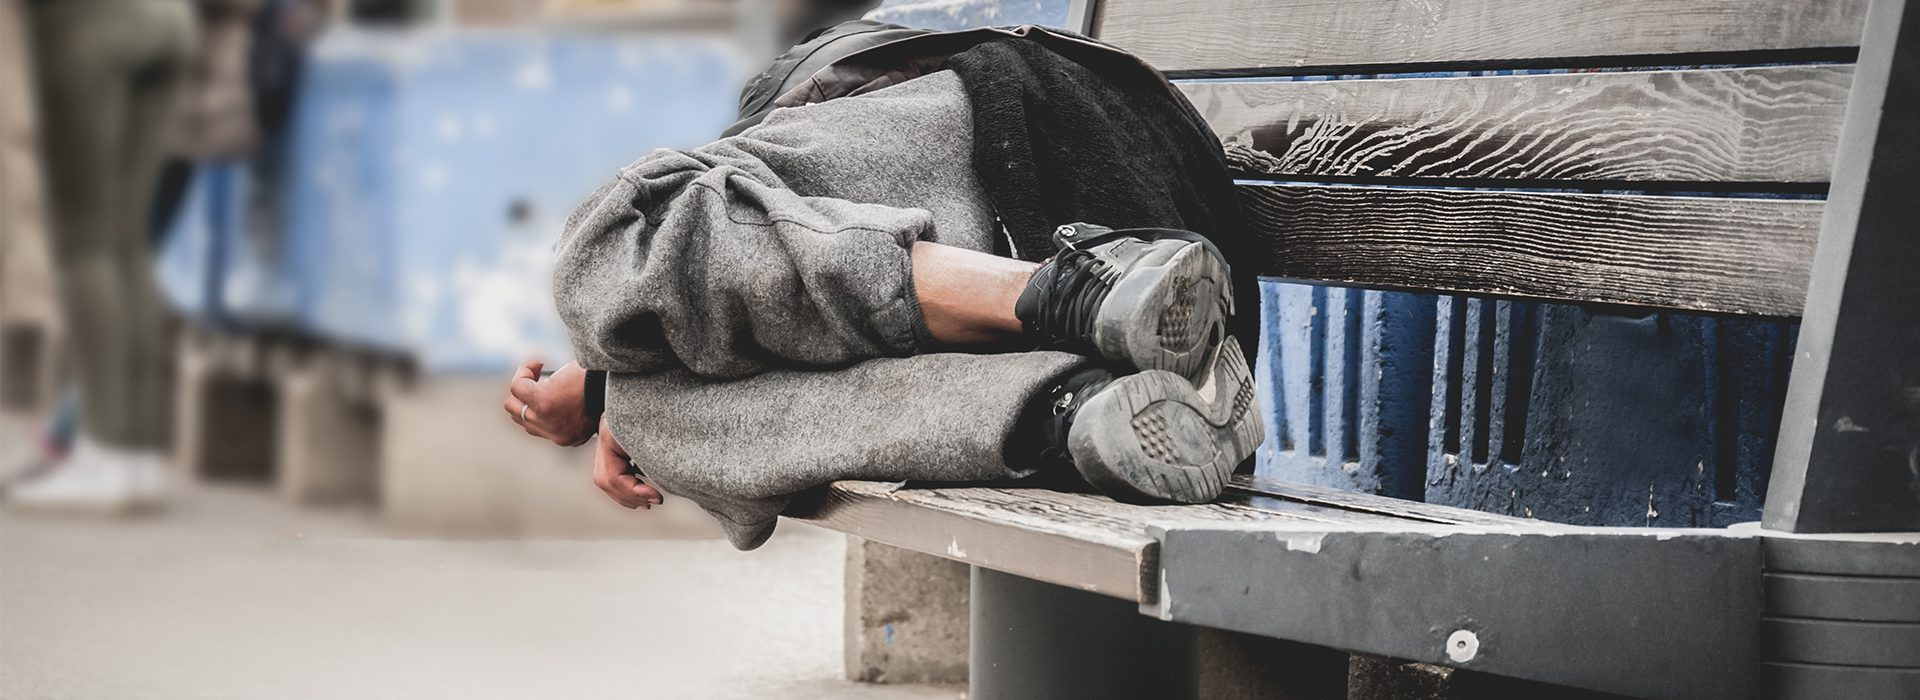 homelessness is not just about shelter